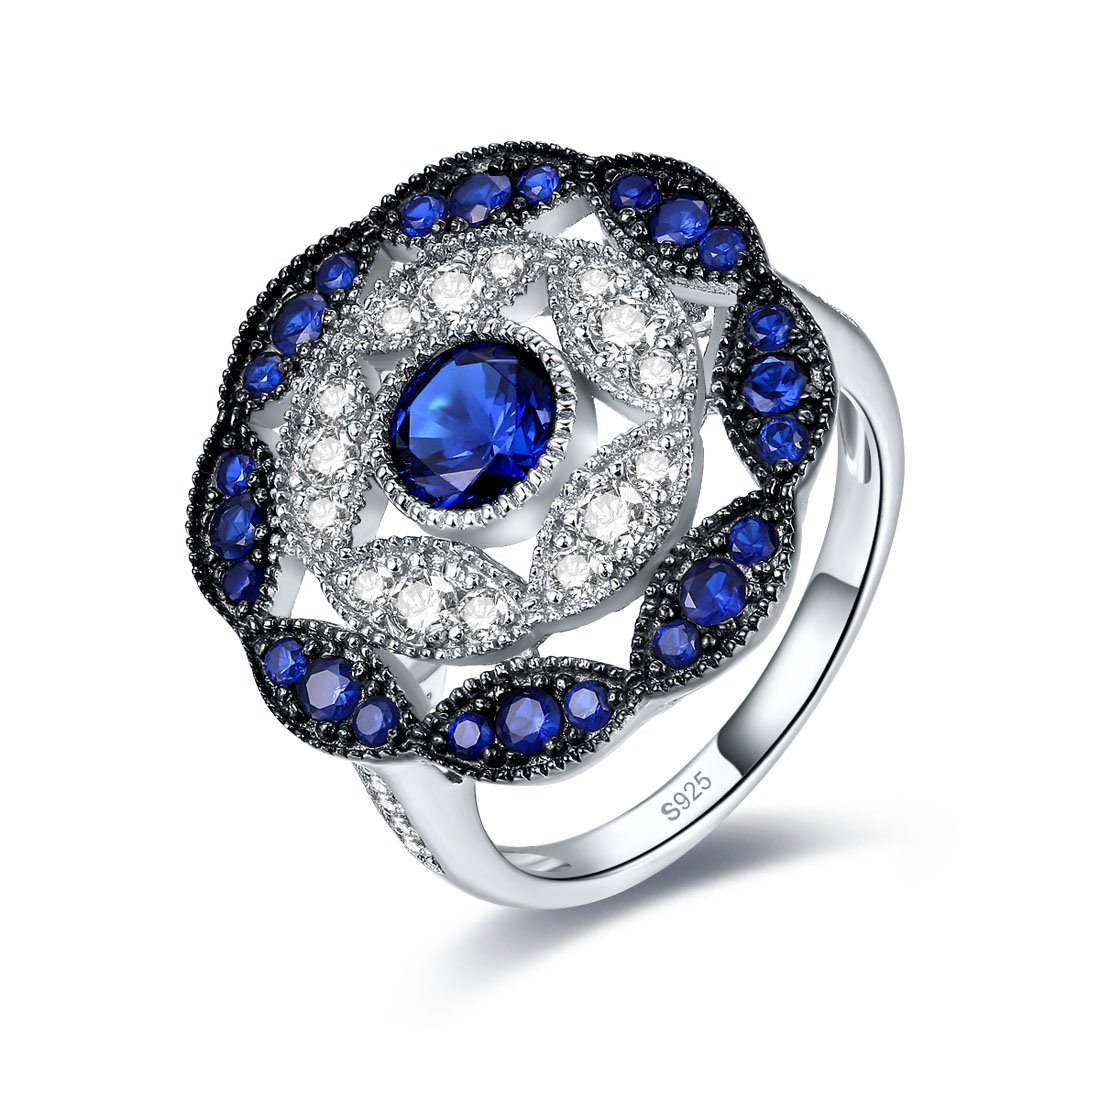 Merthus Anique Vintage Womens 925 Sterling Silver Created Blue Sapphire Cluster Statement Ring